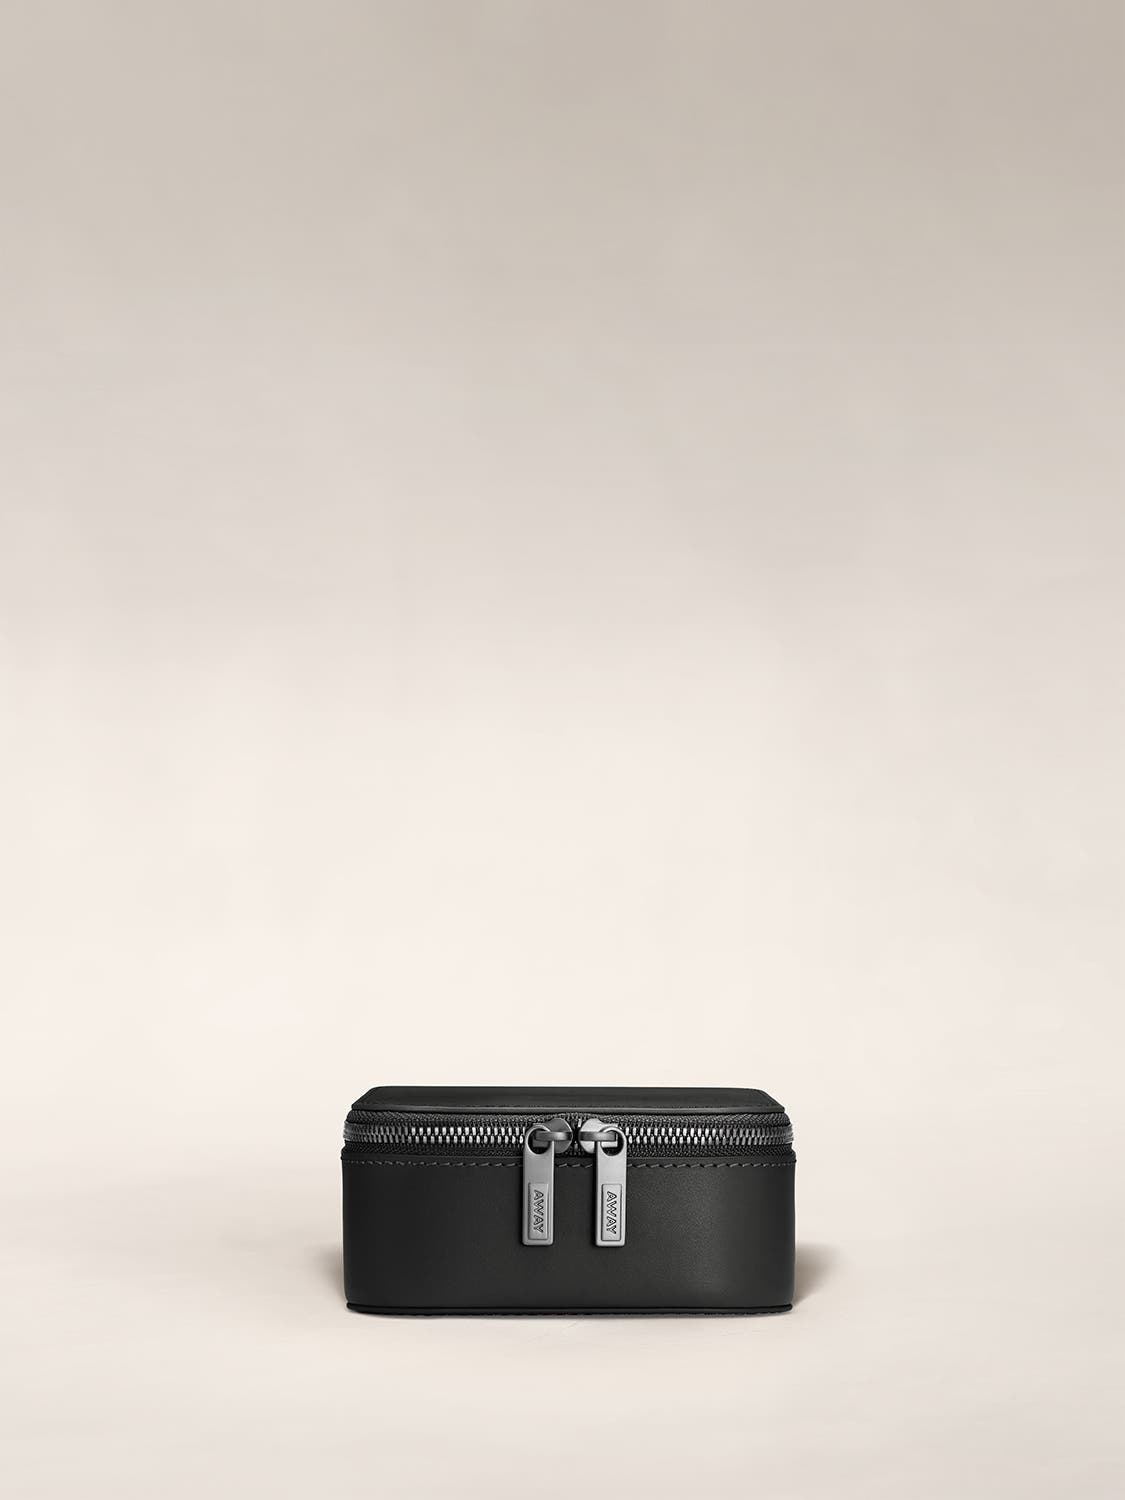 Front view of a black jewelry box zipped with Away logo on zip.